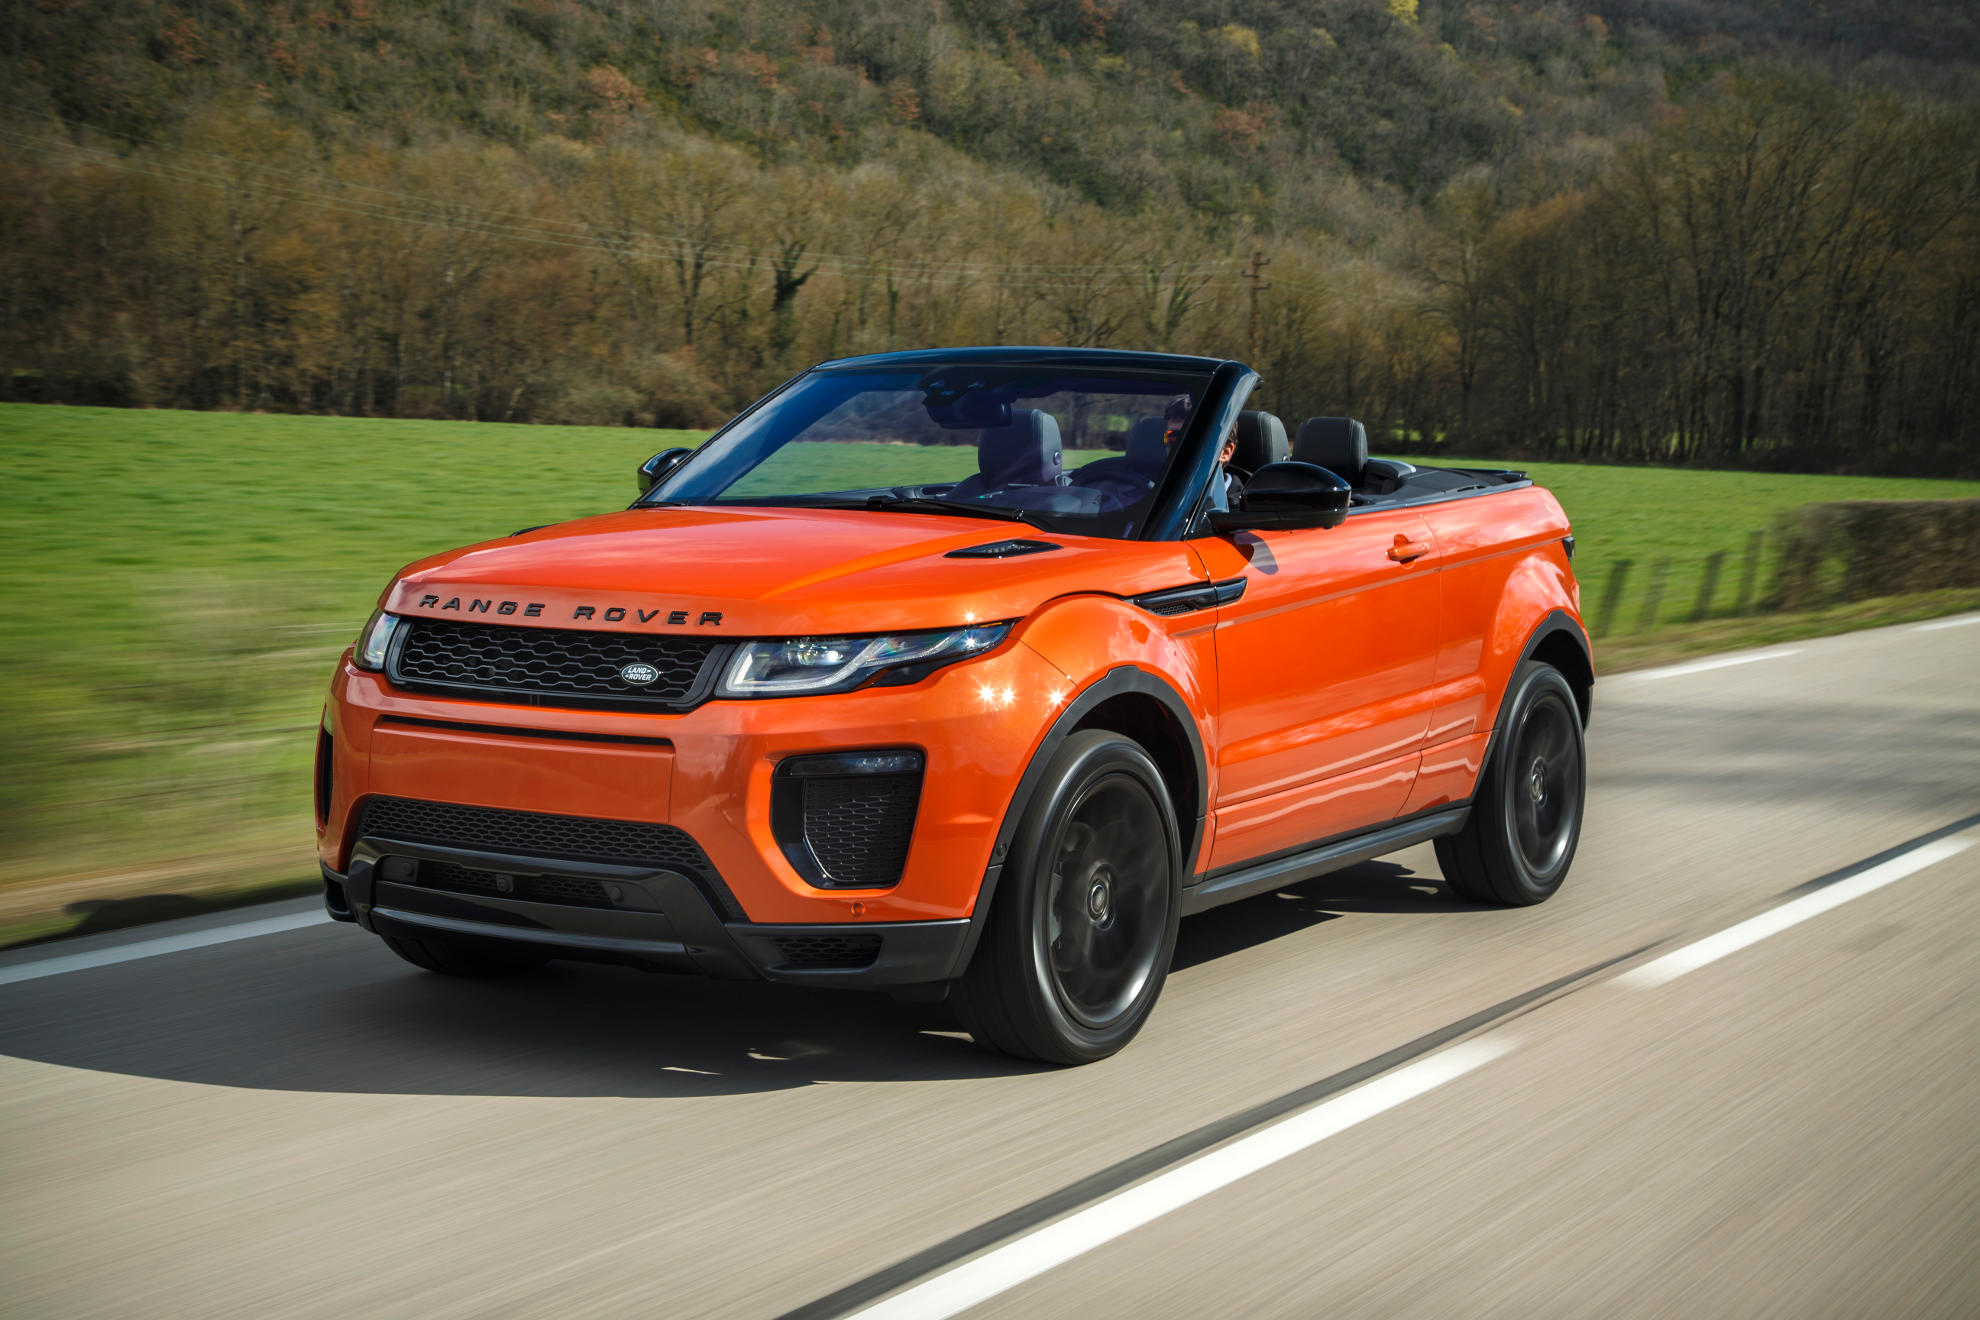 neuer trend range rover evoque cabrio. Black Bedroom Furniture Sets. Home Design Ideas